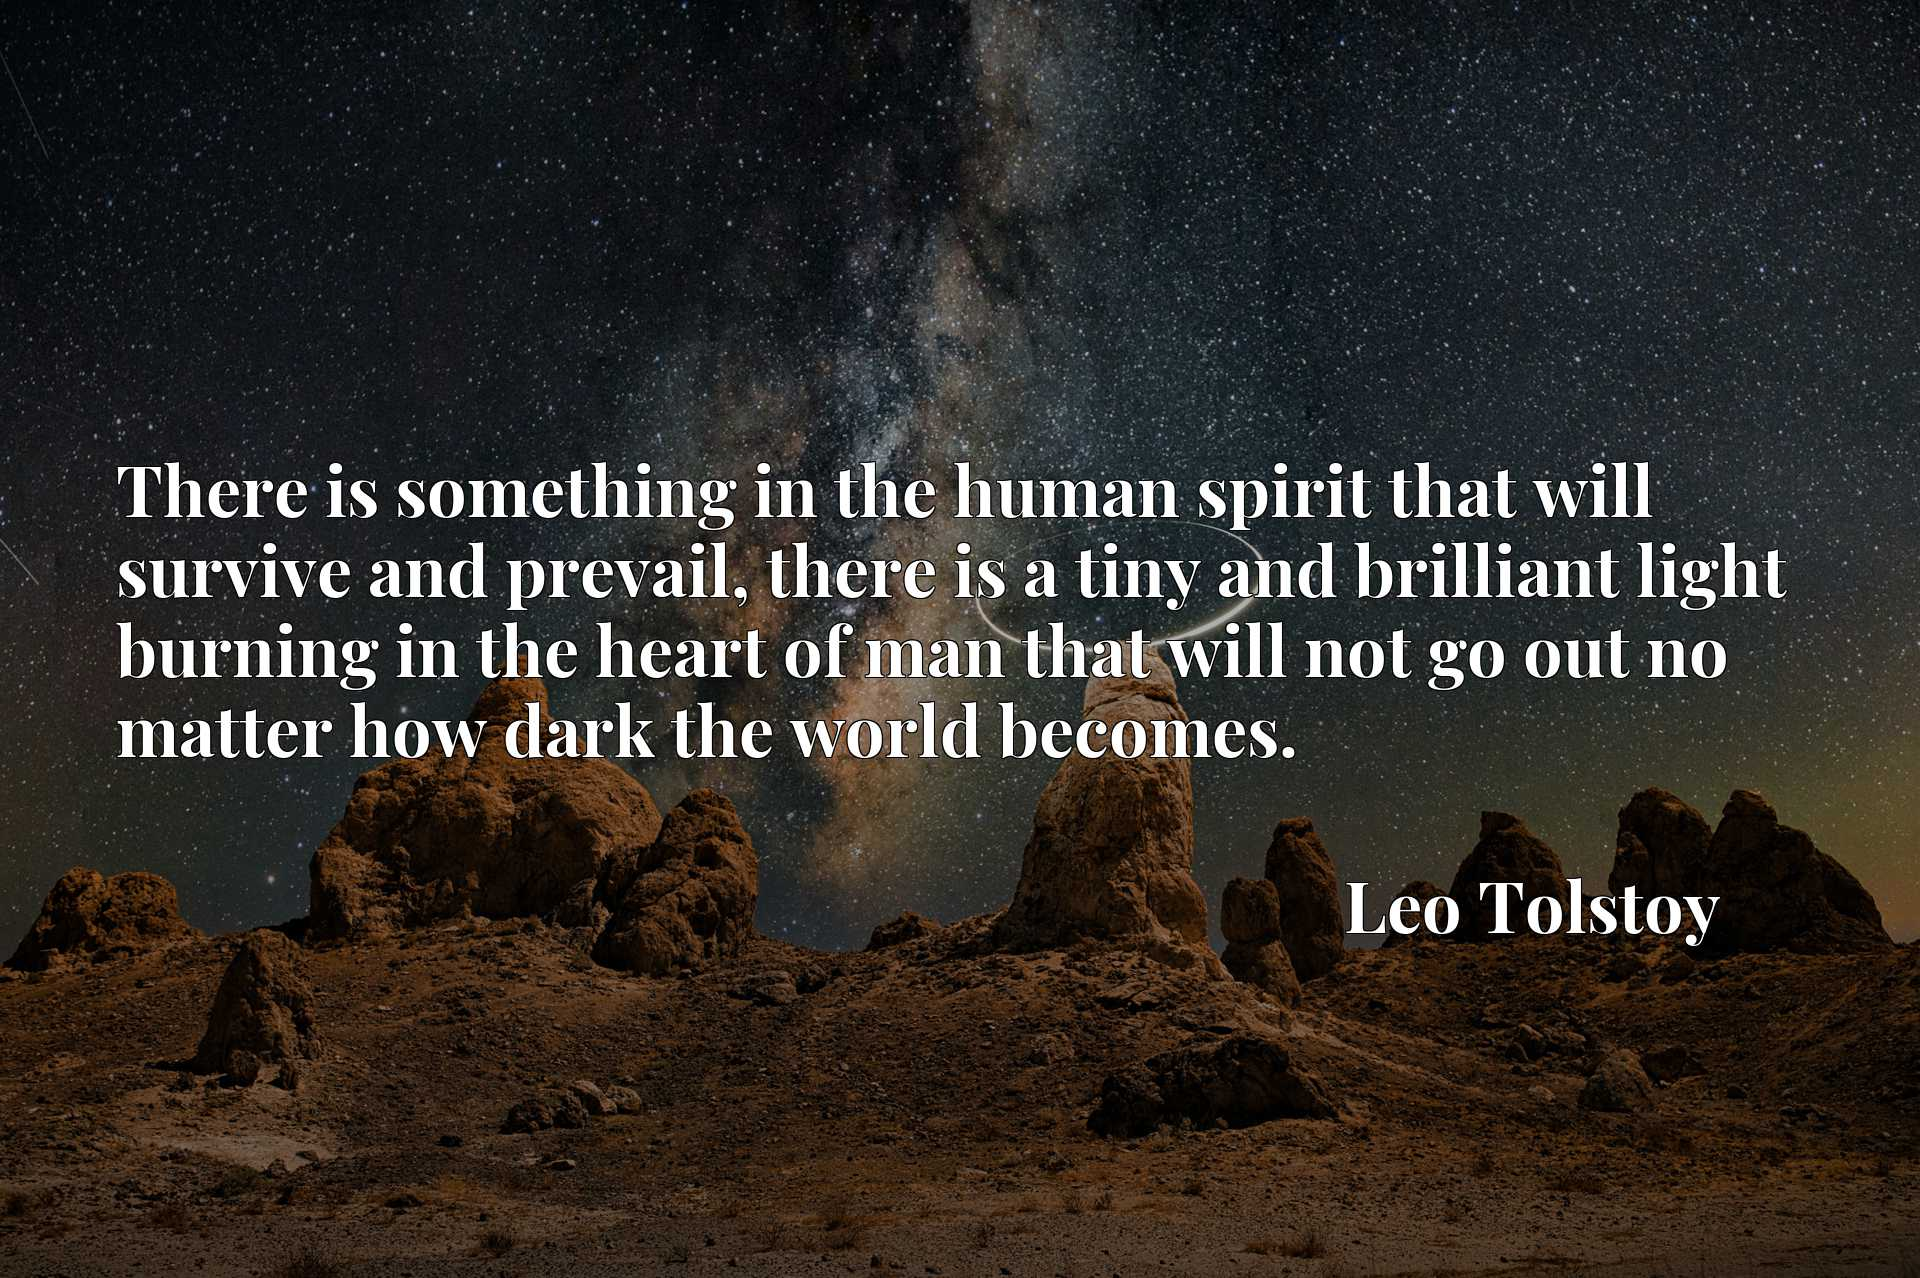 There is something in the human spirit that will survive and prevail, there is a tiny and brilliant light burning in the heart of man that will not go out no matter how dark the world becomes.